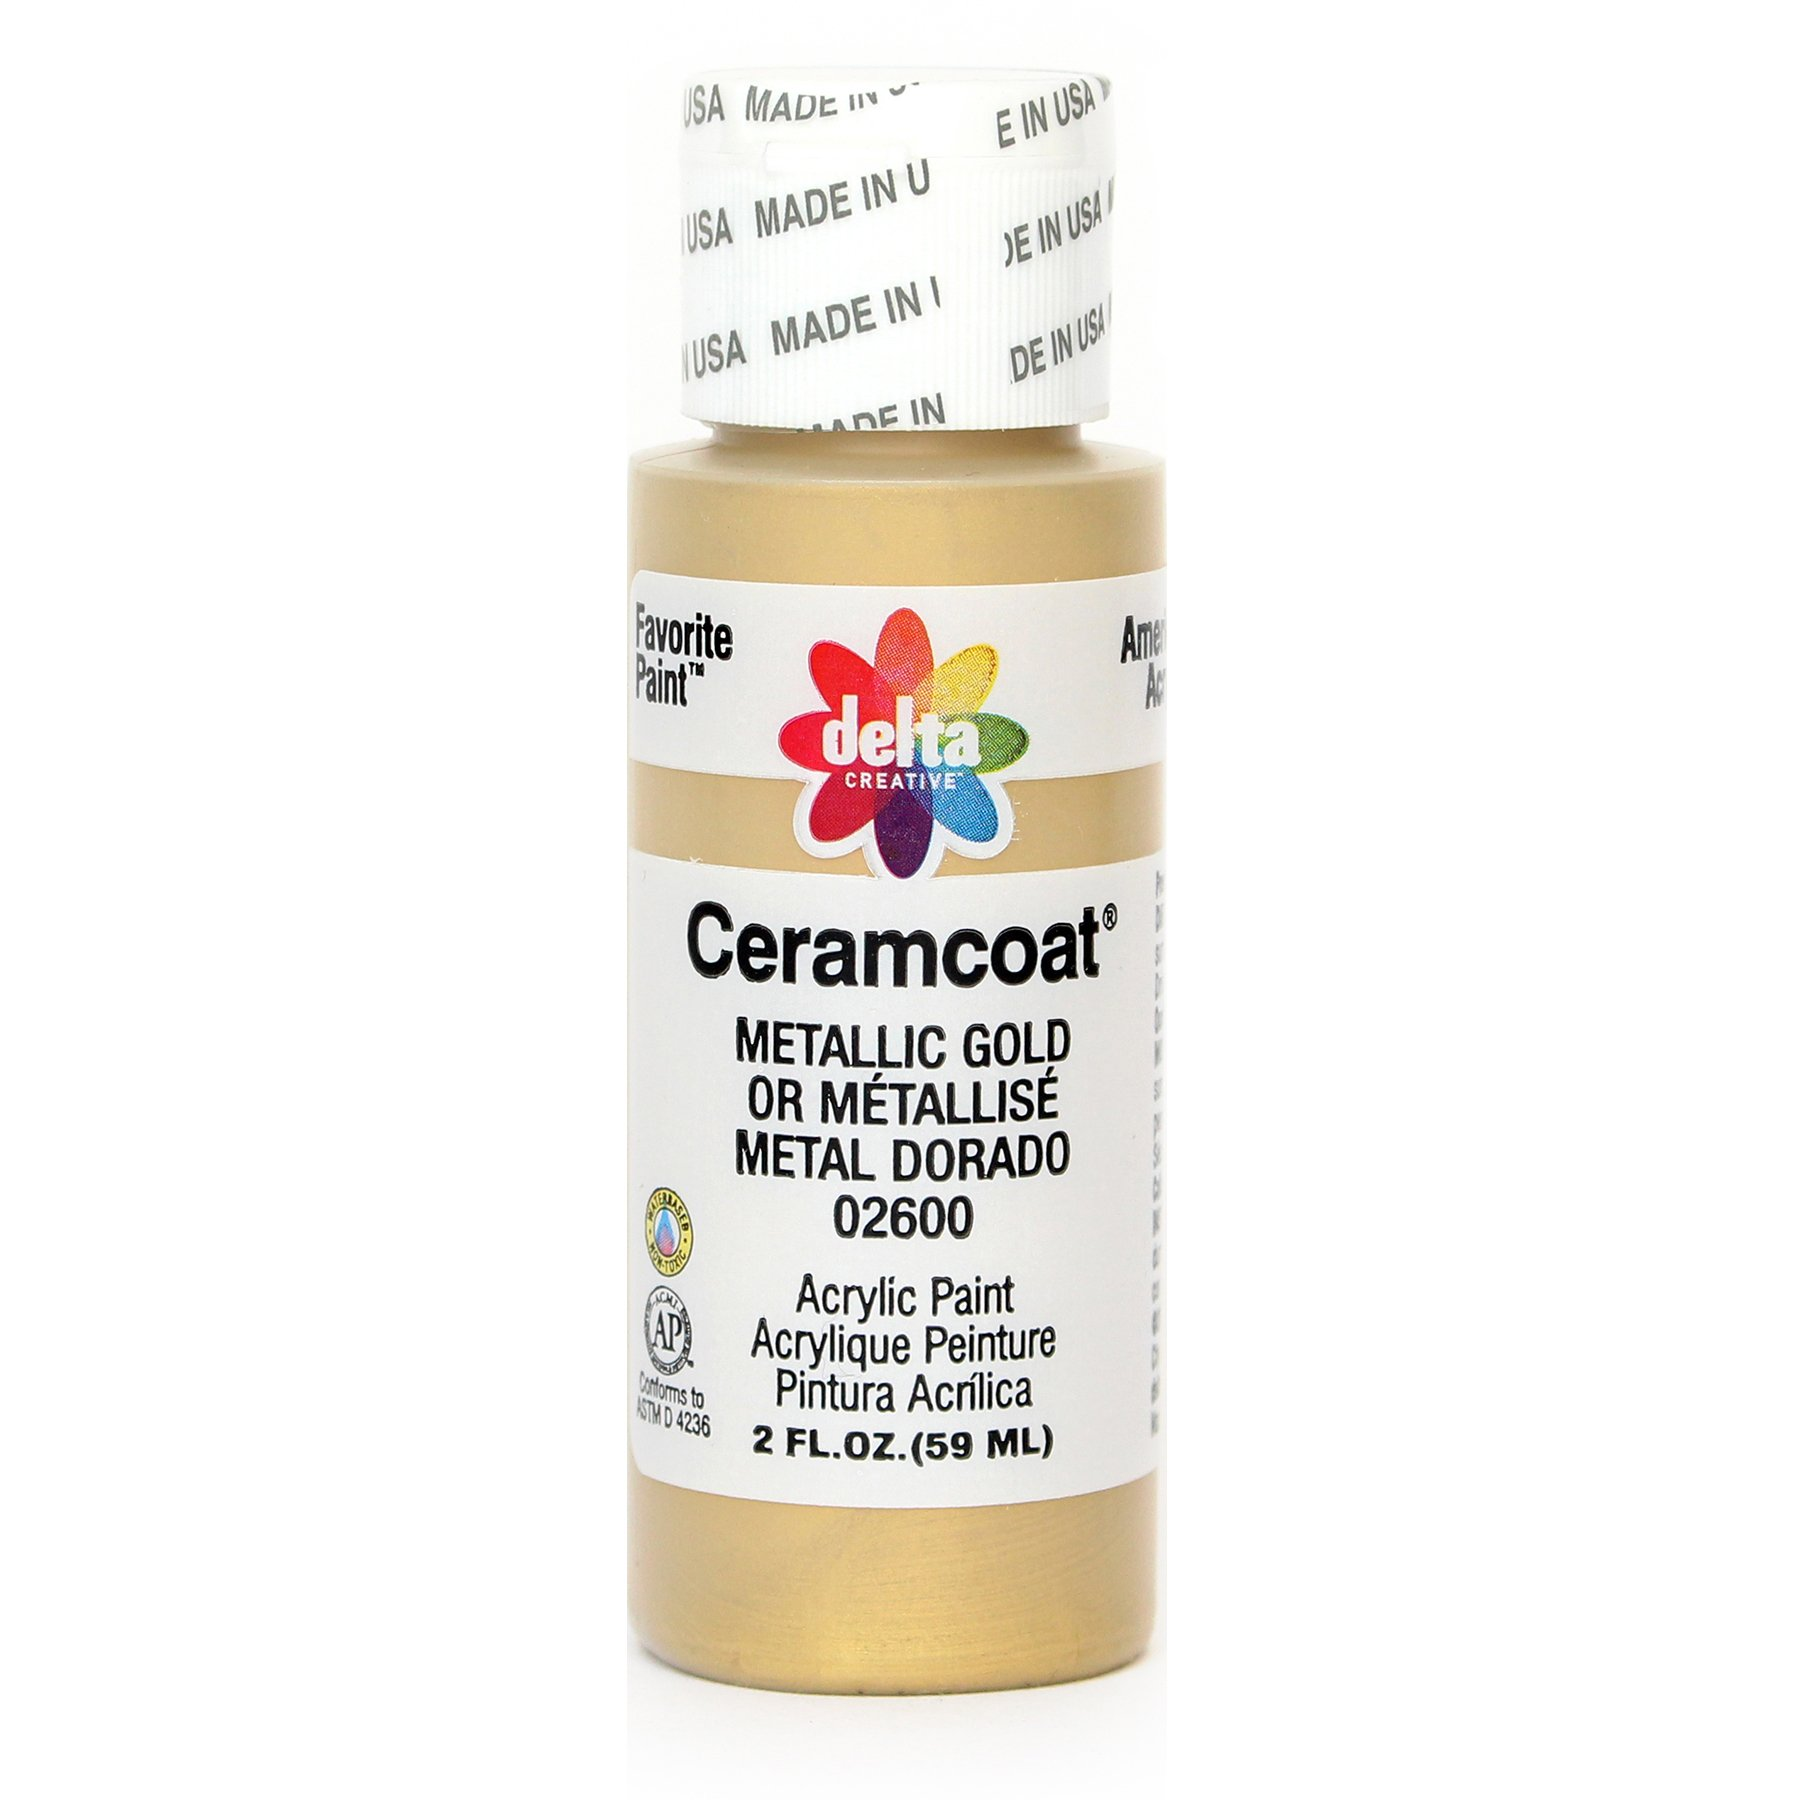 Delta Creative Ceramcoat Metallic and Pearl Acrylic Paint in Assorted Colors (2 oz), 2600, Metallic Gold